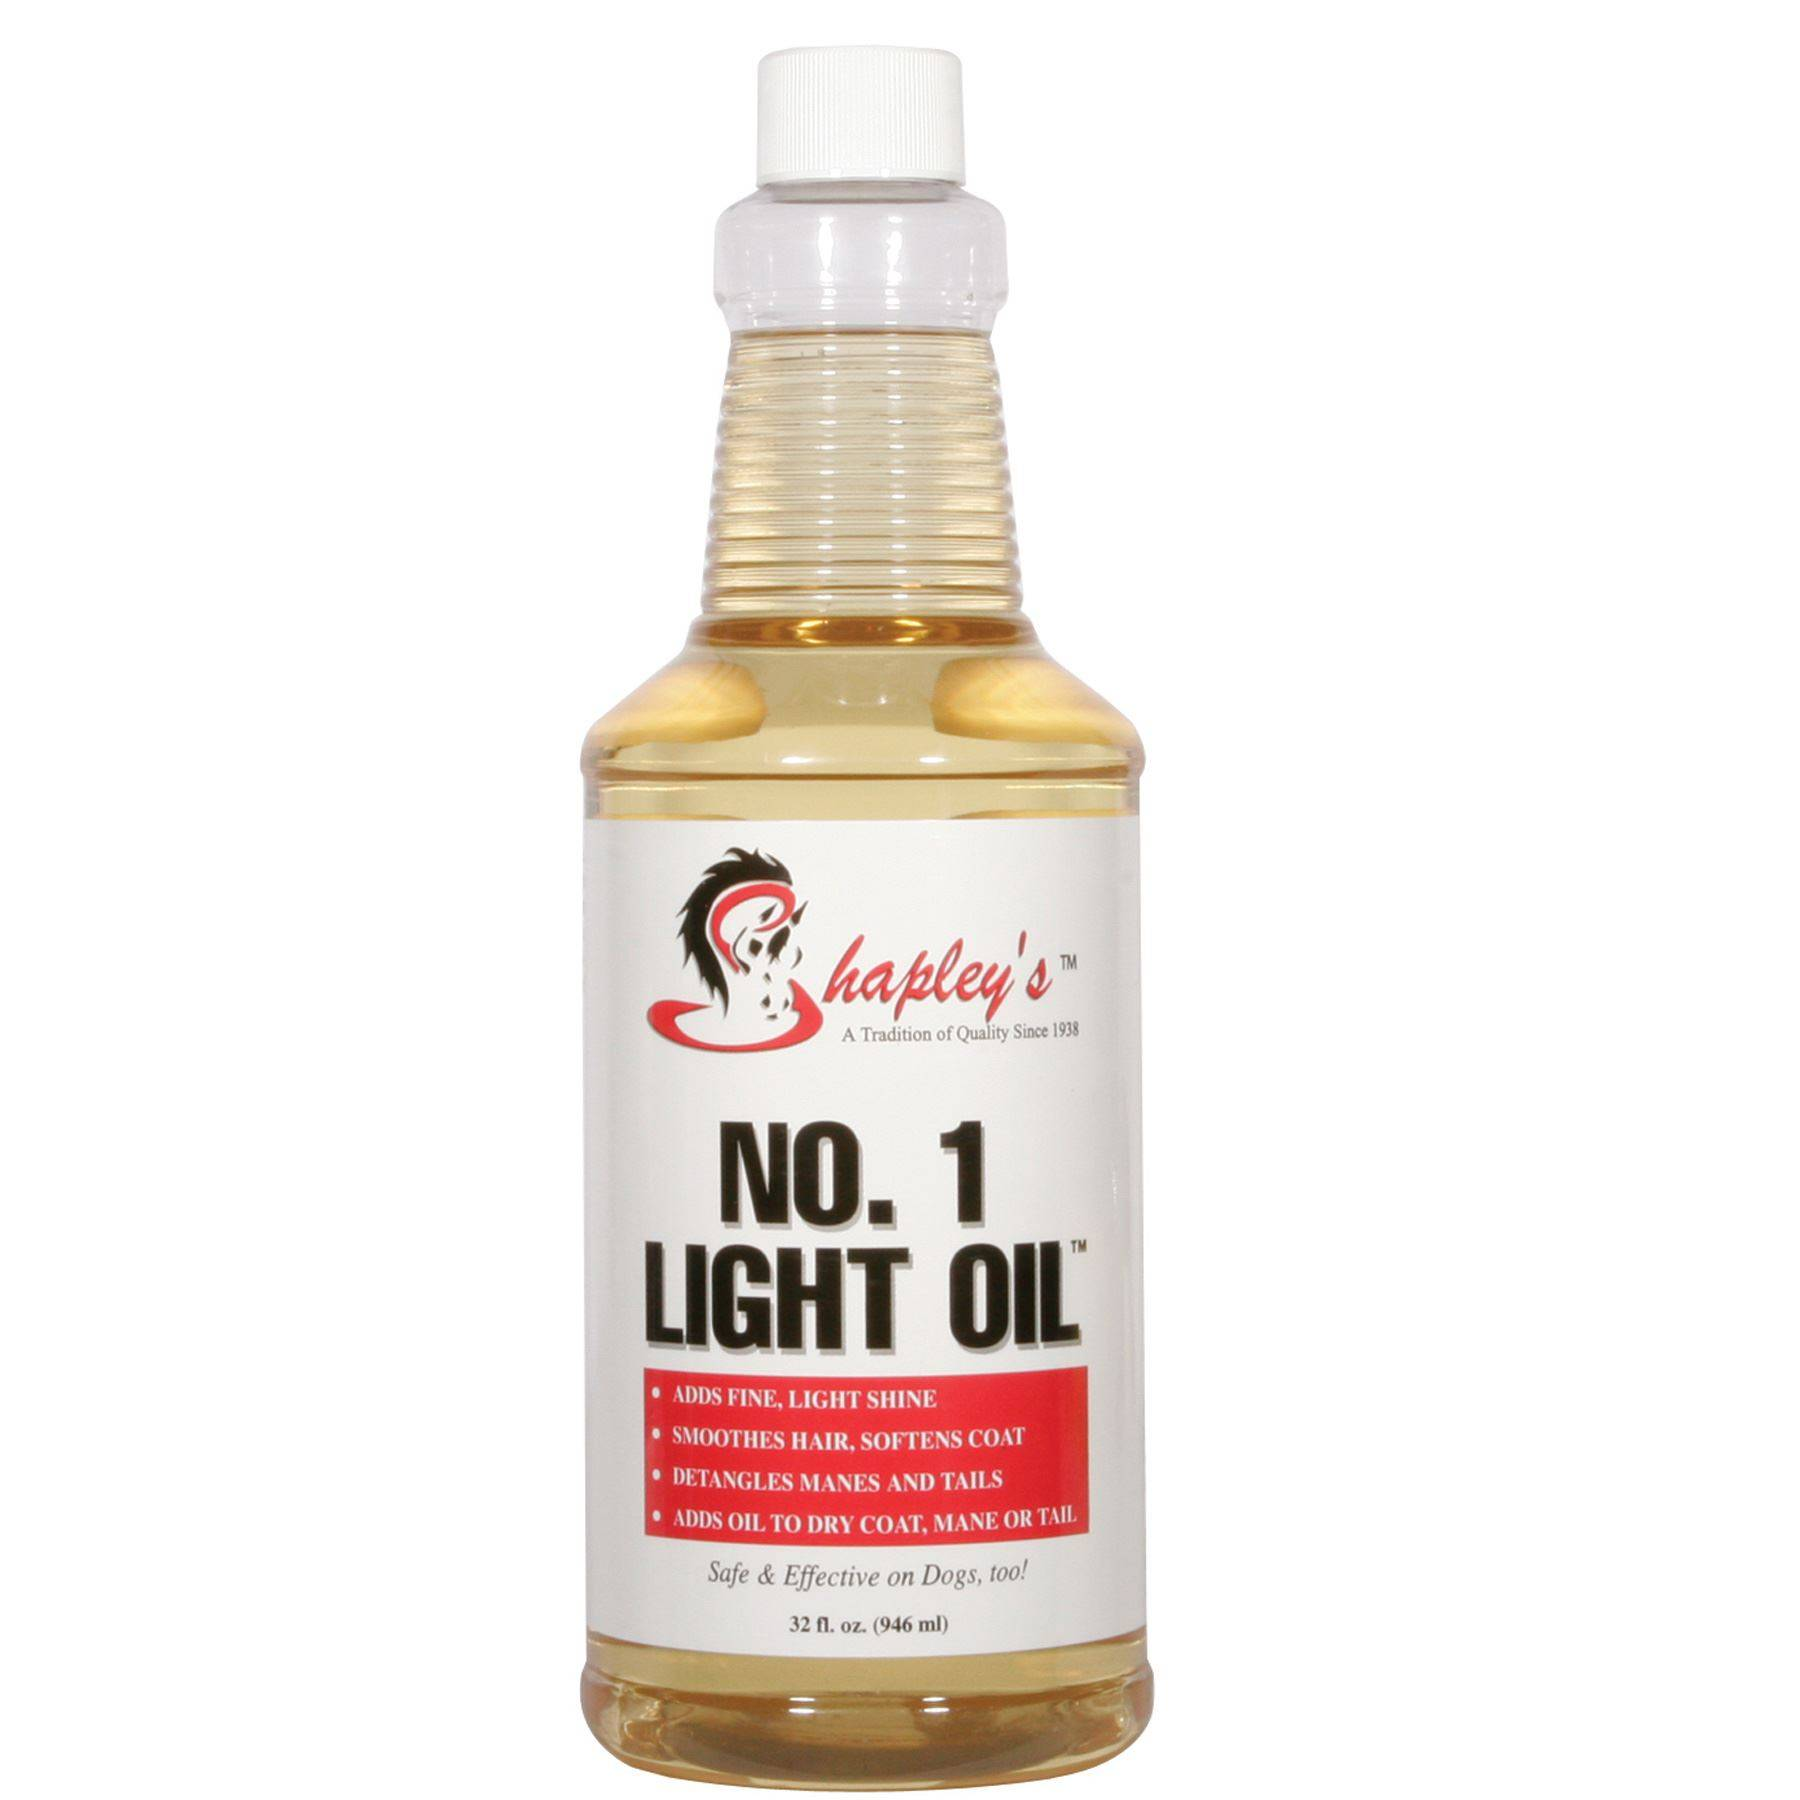 4 Steps to Take When the Oil Light Turns On: